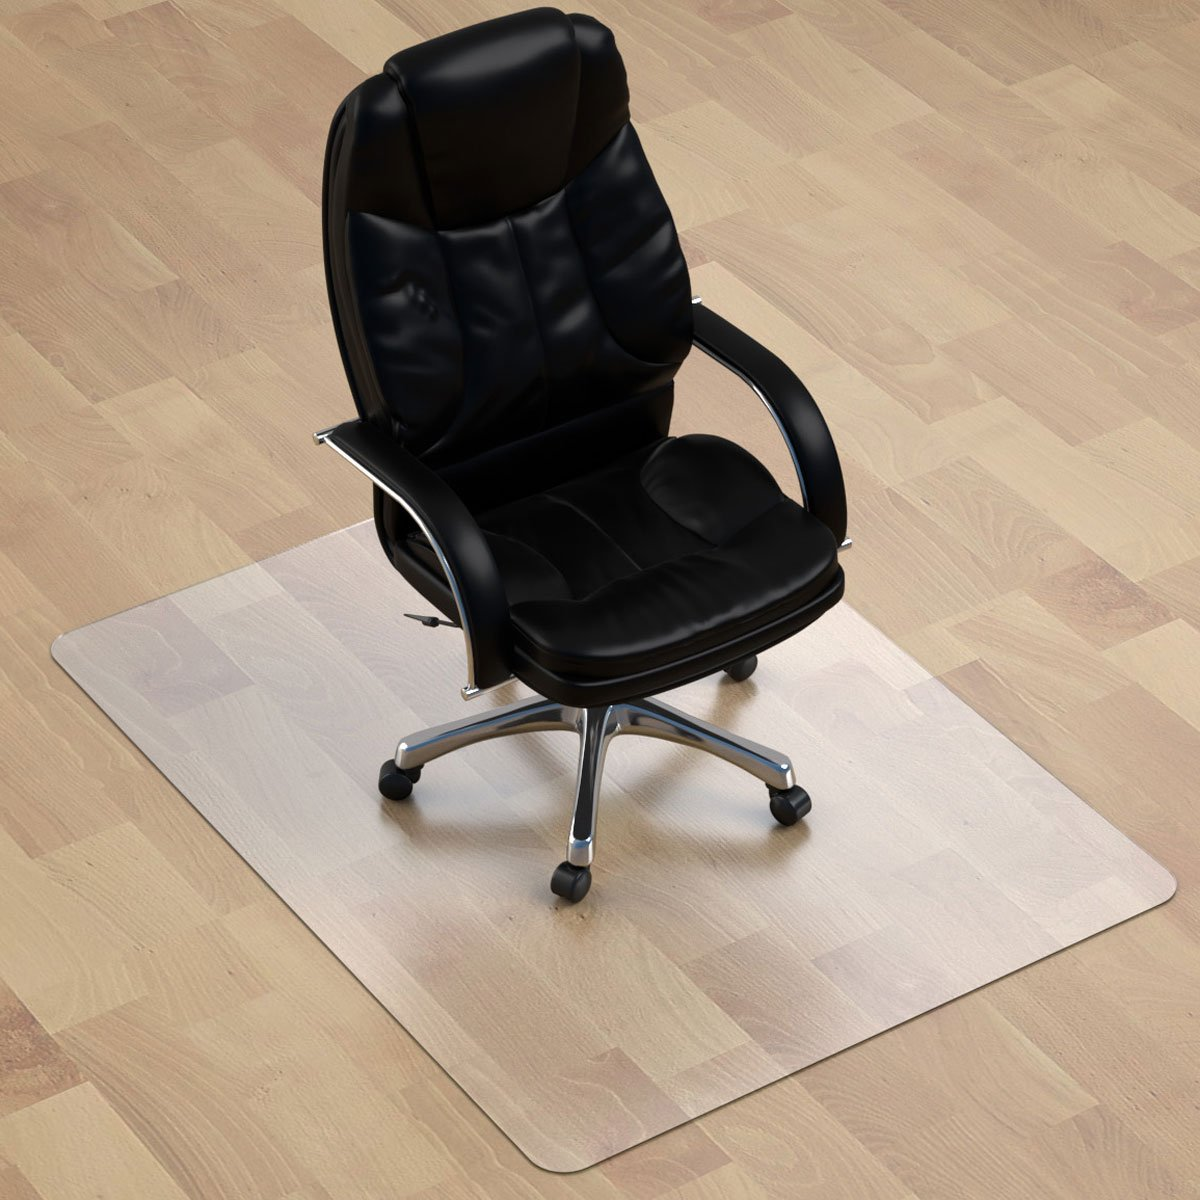 28b8f8bd0c5 Best Rated in Chair Mats   Helpful Customer Reviews - Amazon.com